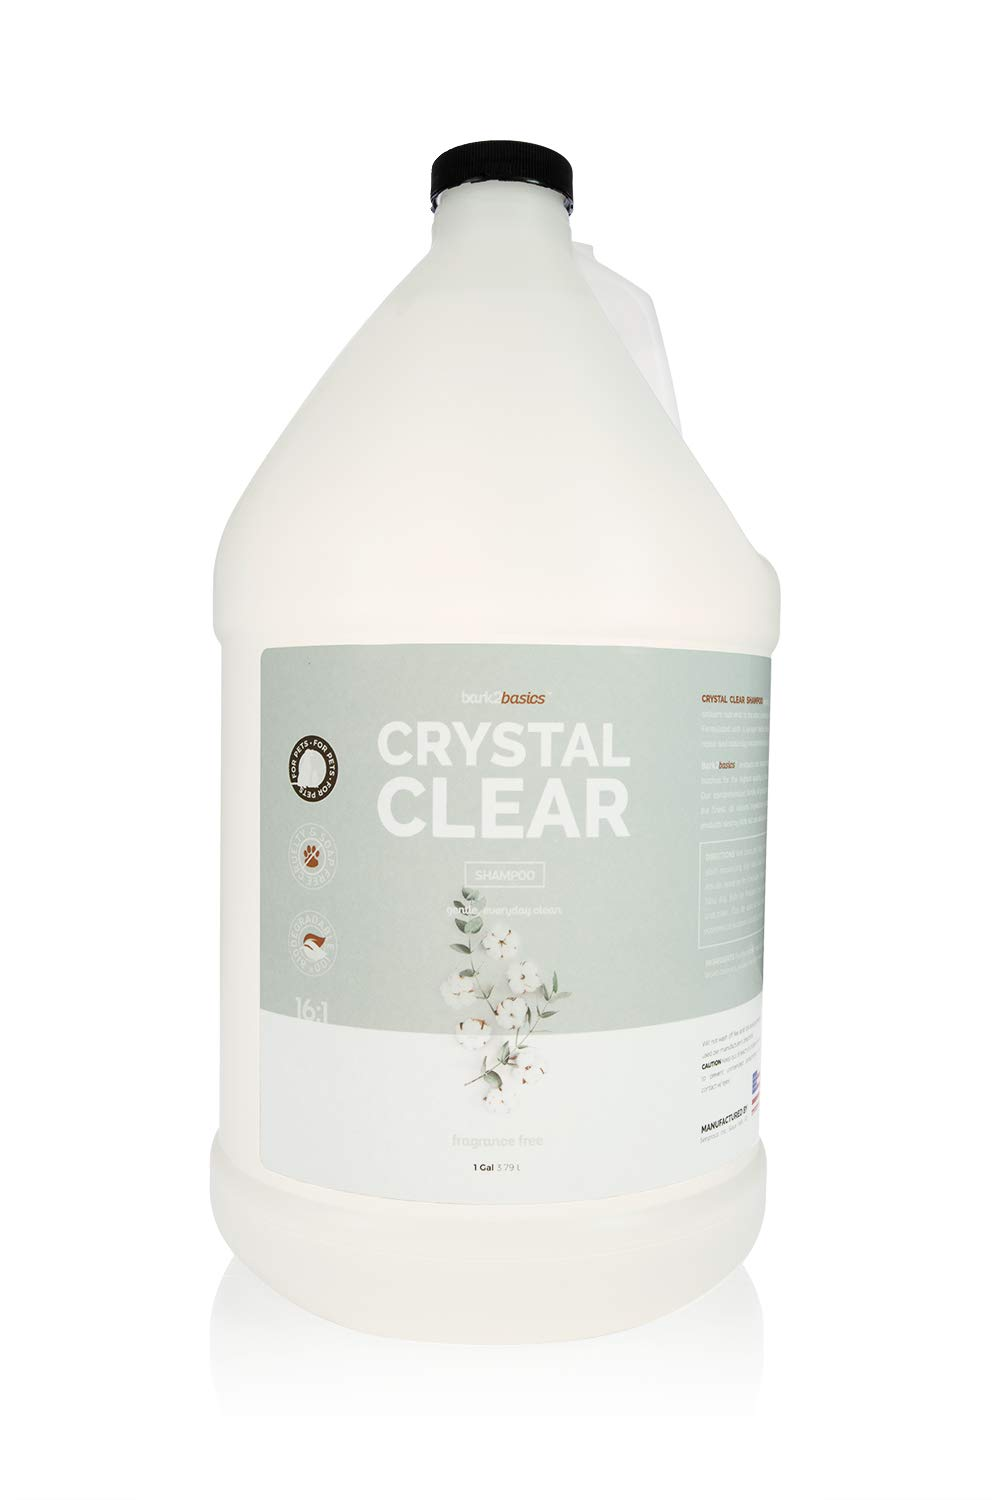 Bark 2 Basics Crystal Clear Dog Shampoo, 1 Gallon   All Natural Ingredients, Fragrance and Color Free   Crafted with a Unique Herbal Blend